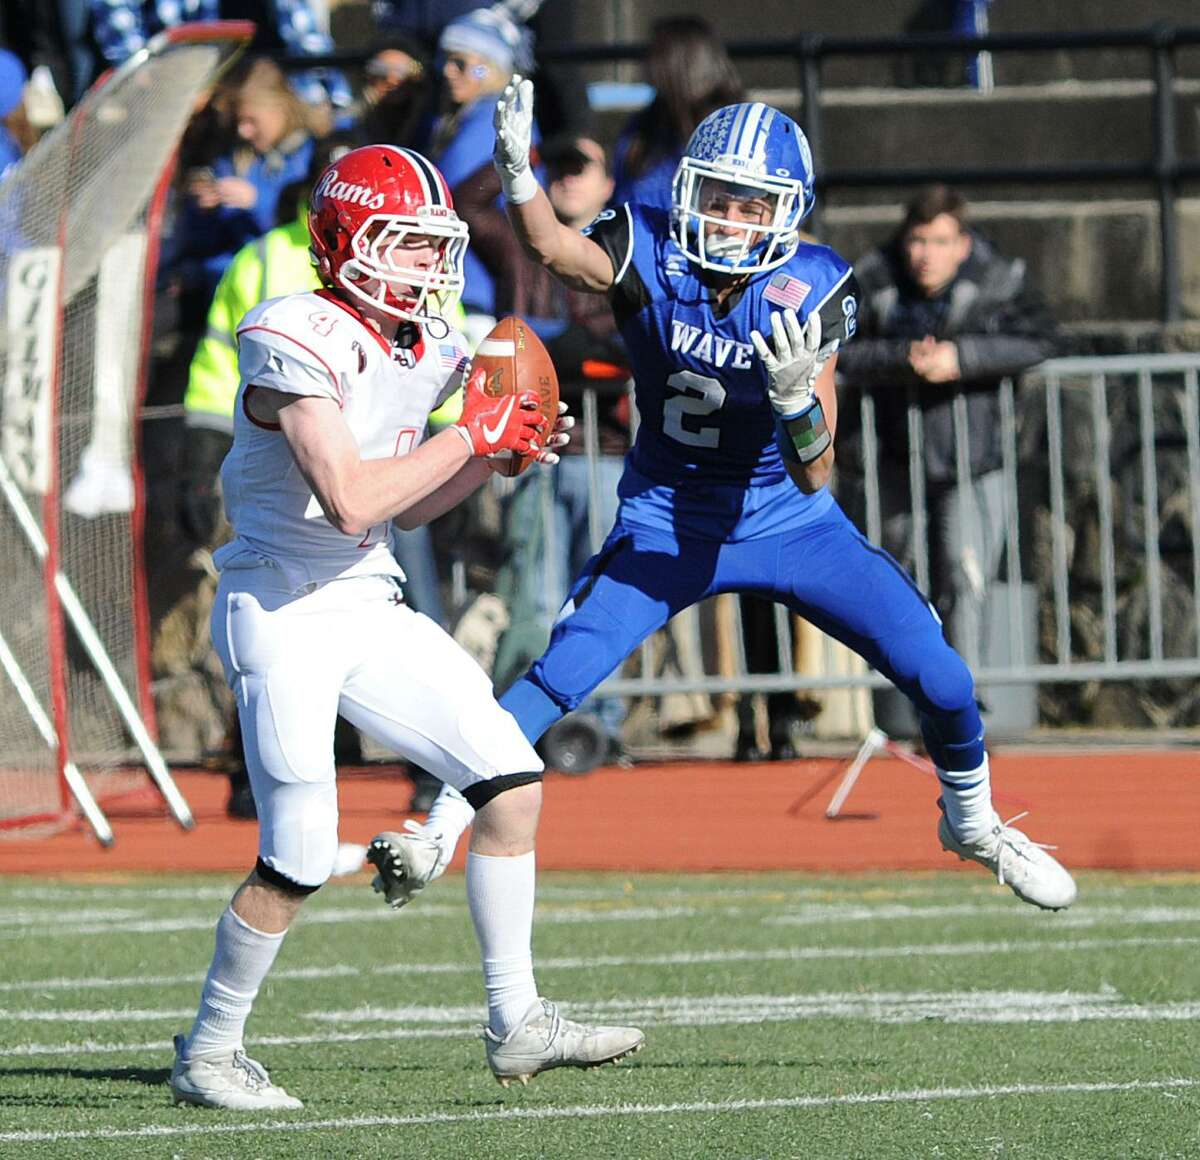 New Canaan defender Zachary Miller (#4), left, steps in front of Darien receiver Alexander Dehmel (#2), to intercept a pass that he returned for a touchdown that was the final touchdown of the game in the 4th quarter of the 2017 Turkey Bowl high school football game between Darien High School and New Canaan High School at Boyle Stadium in Stamford, Conn., Thursday, Nov. 23, 2017. New Canaan won the game 27-0, beating an undefeated Darien team that was without starting quarterback Jack Joyce and star defensive back Brian Minicus, both of whom were arrested Wednesday night on charges stemming from an assault earlier in the month.